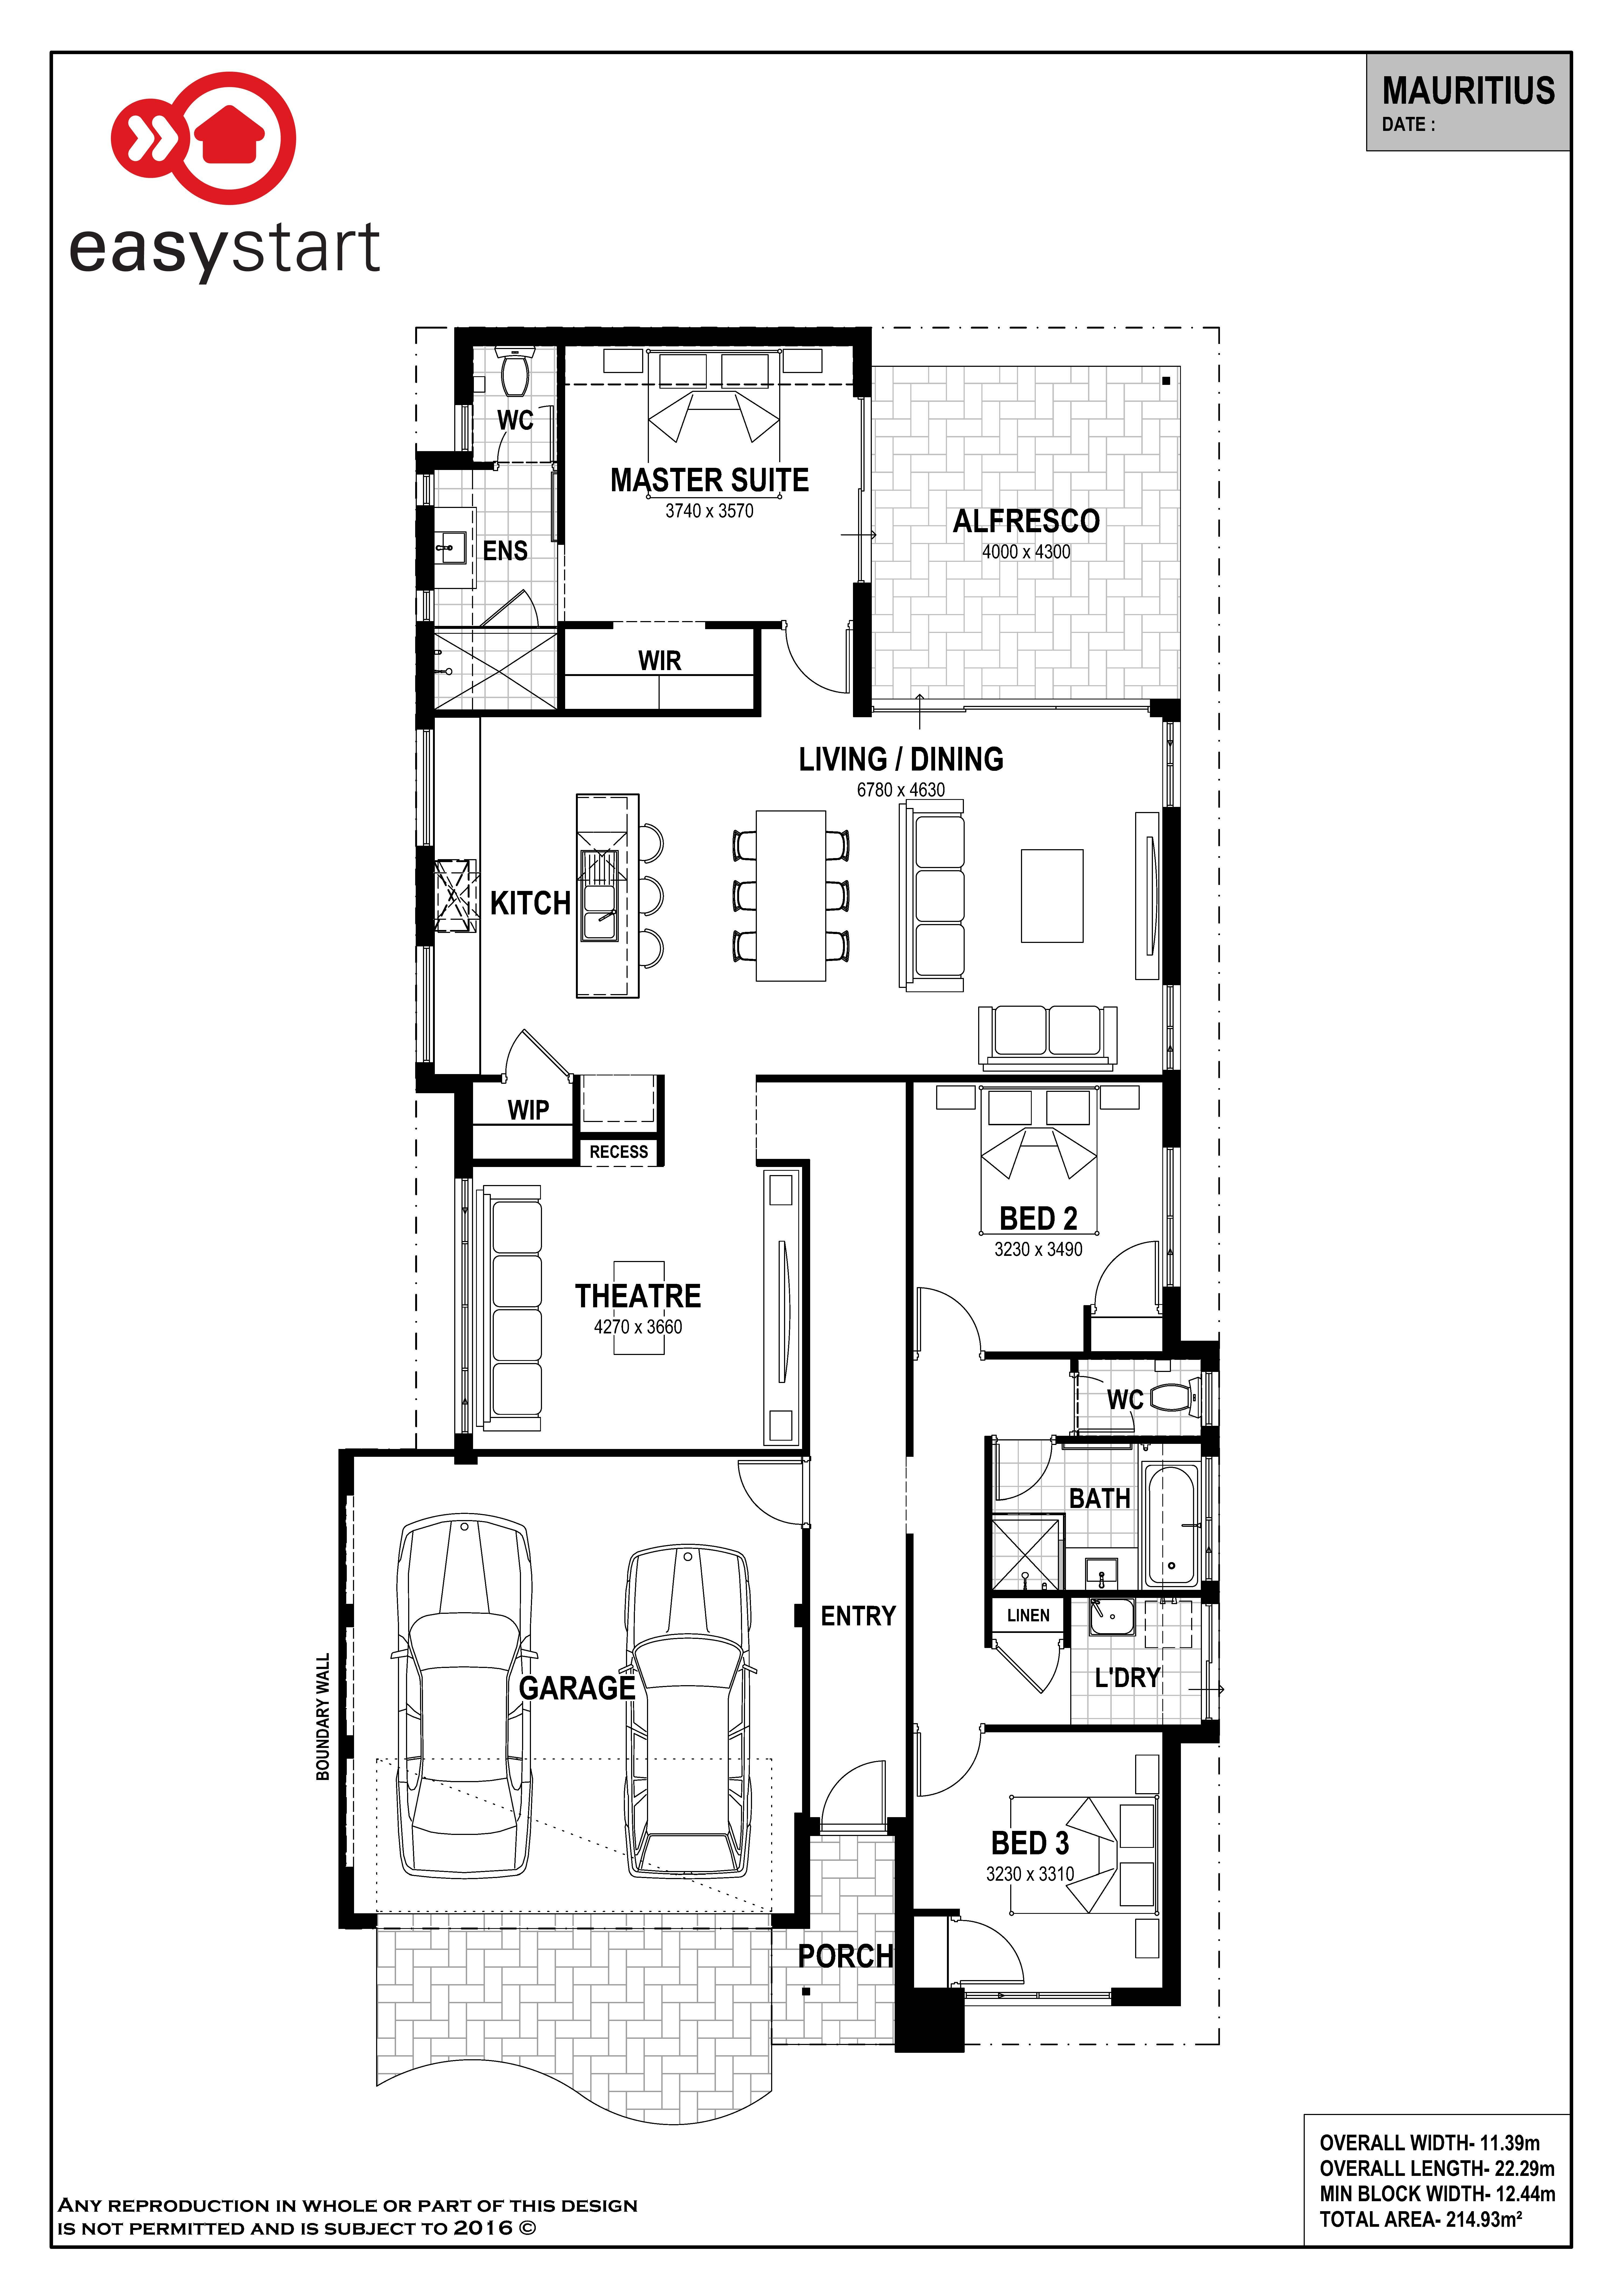 Building Plans and Designs Best Of Mauritius